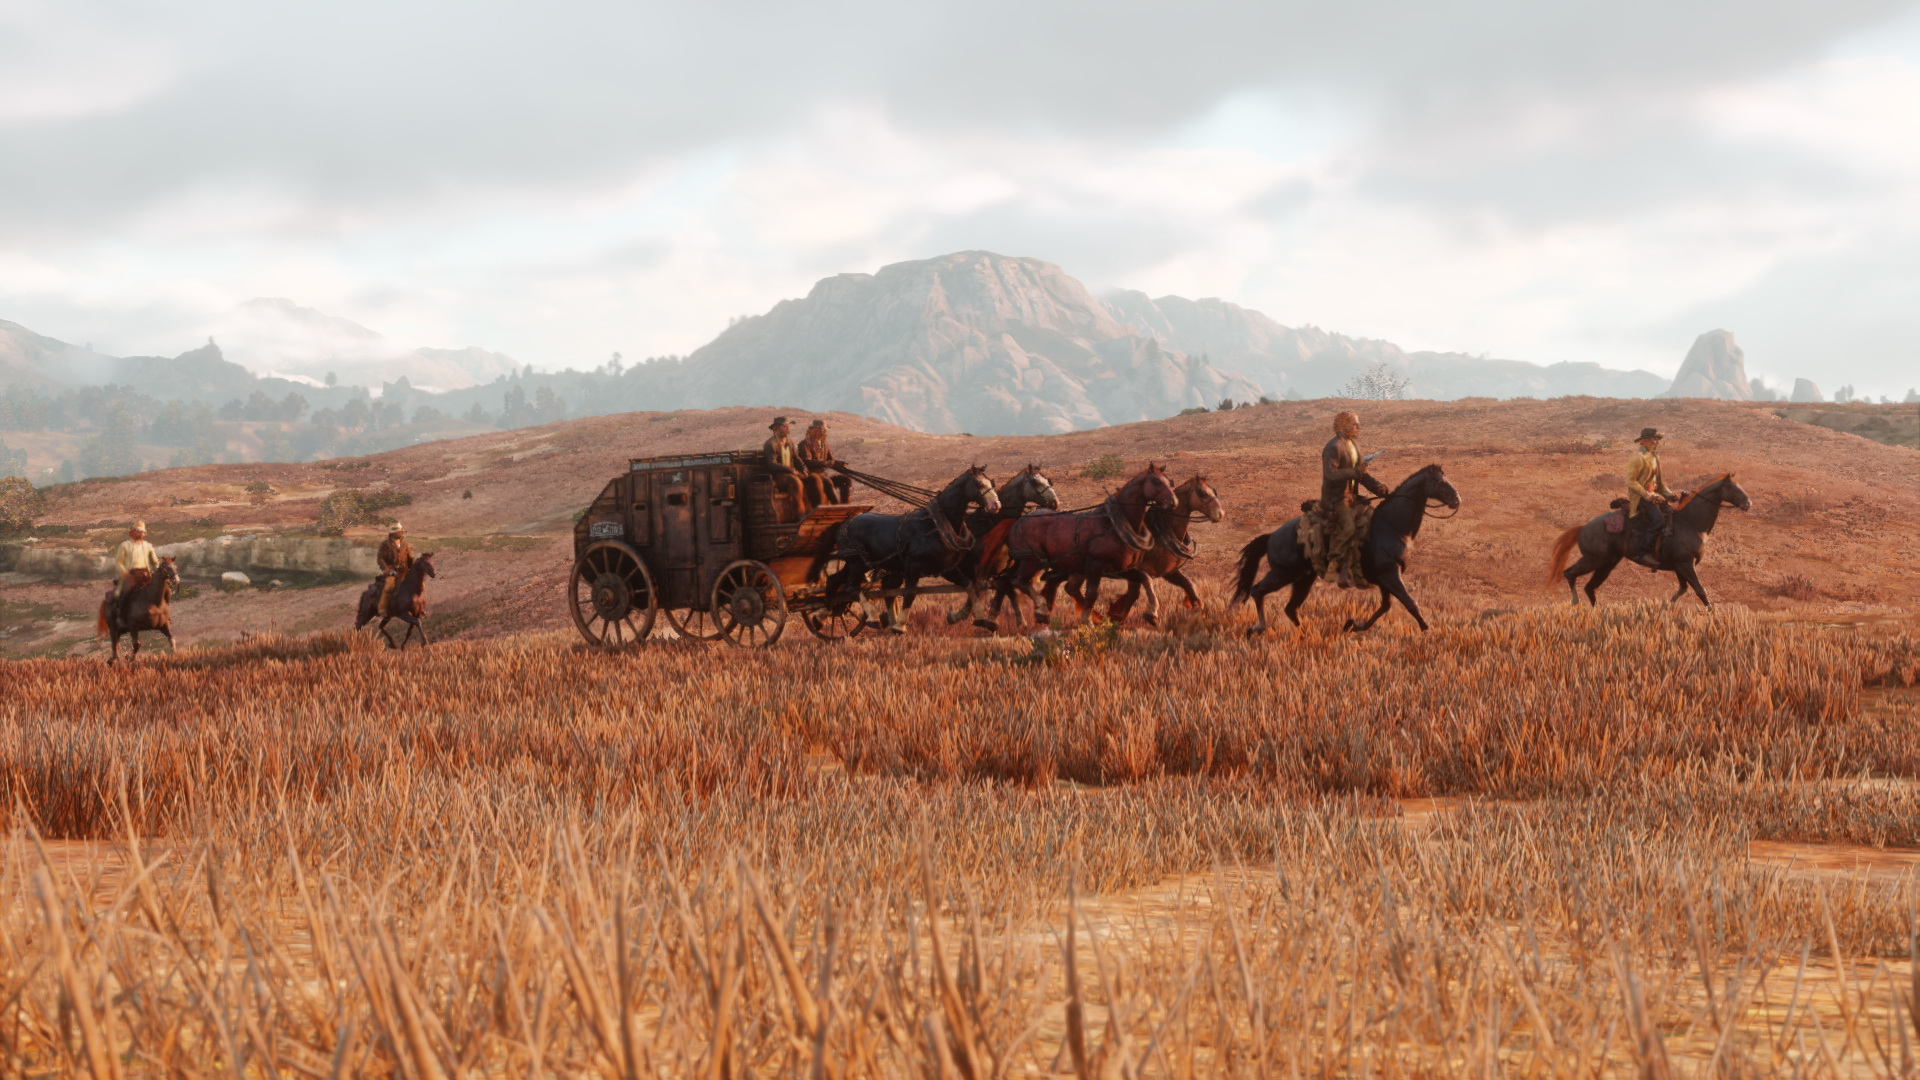 Red Dead Redemption 2 Hd Wallpaper Background Image 1920x1080